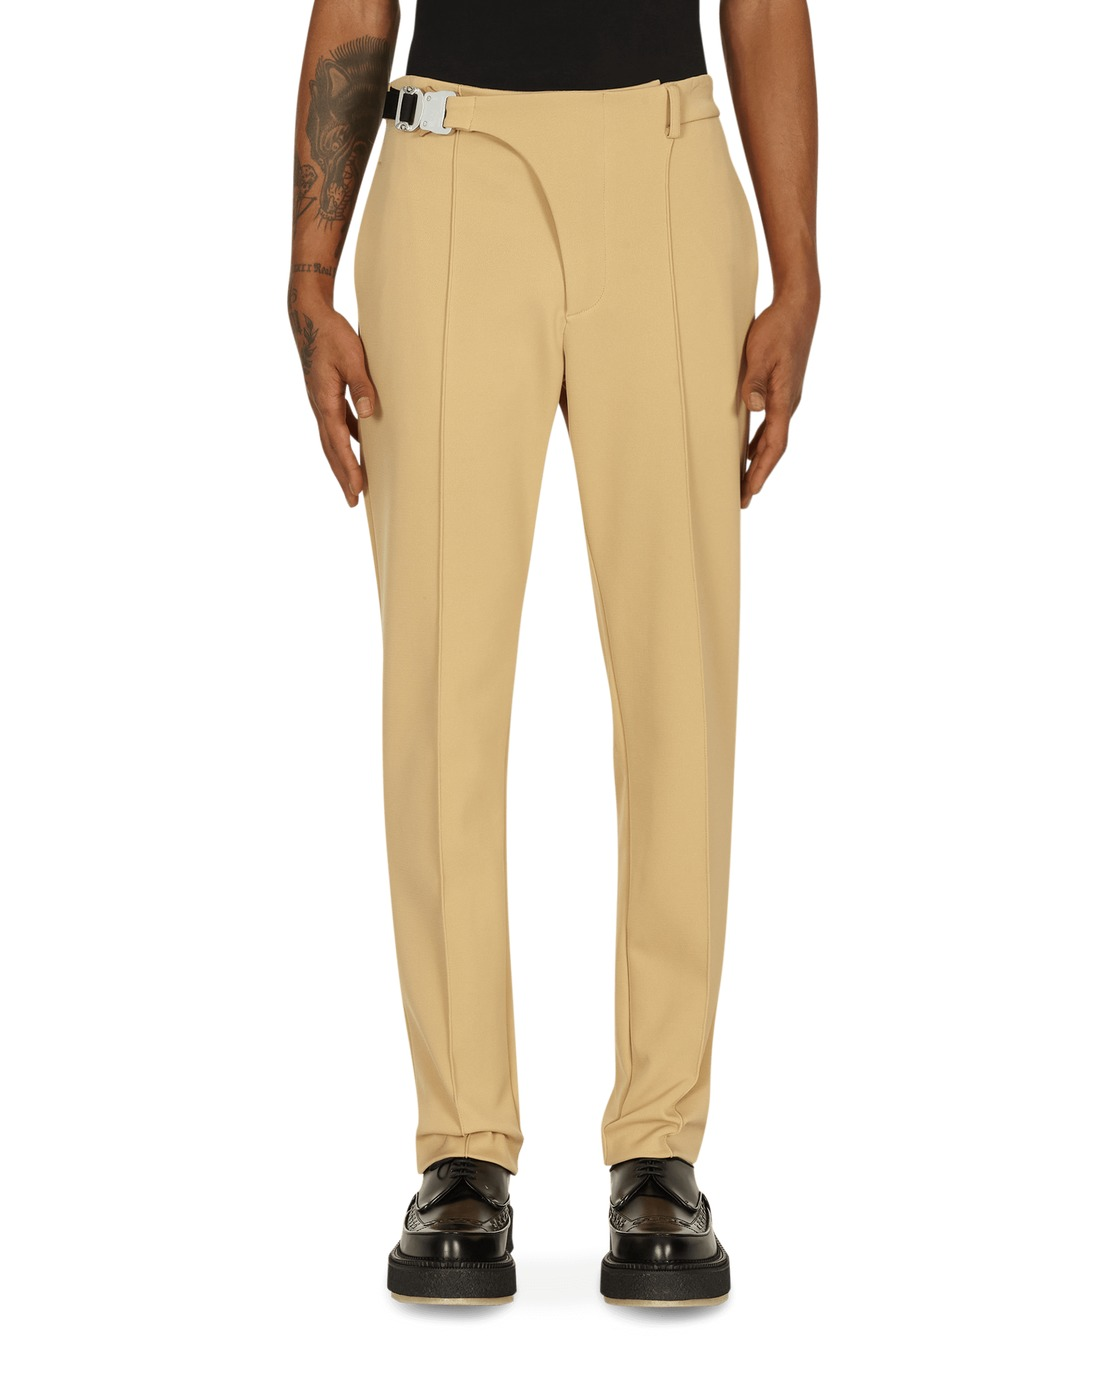 1017 Alyx 9sm Cresent Pants Champagne